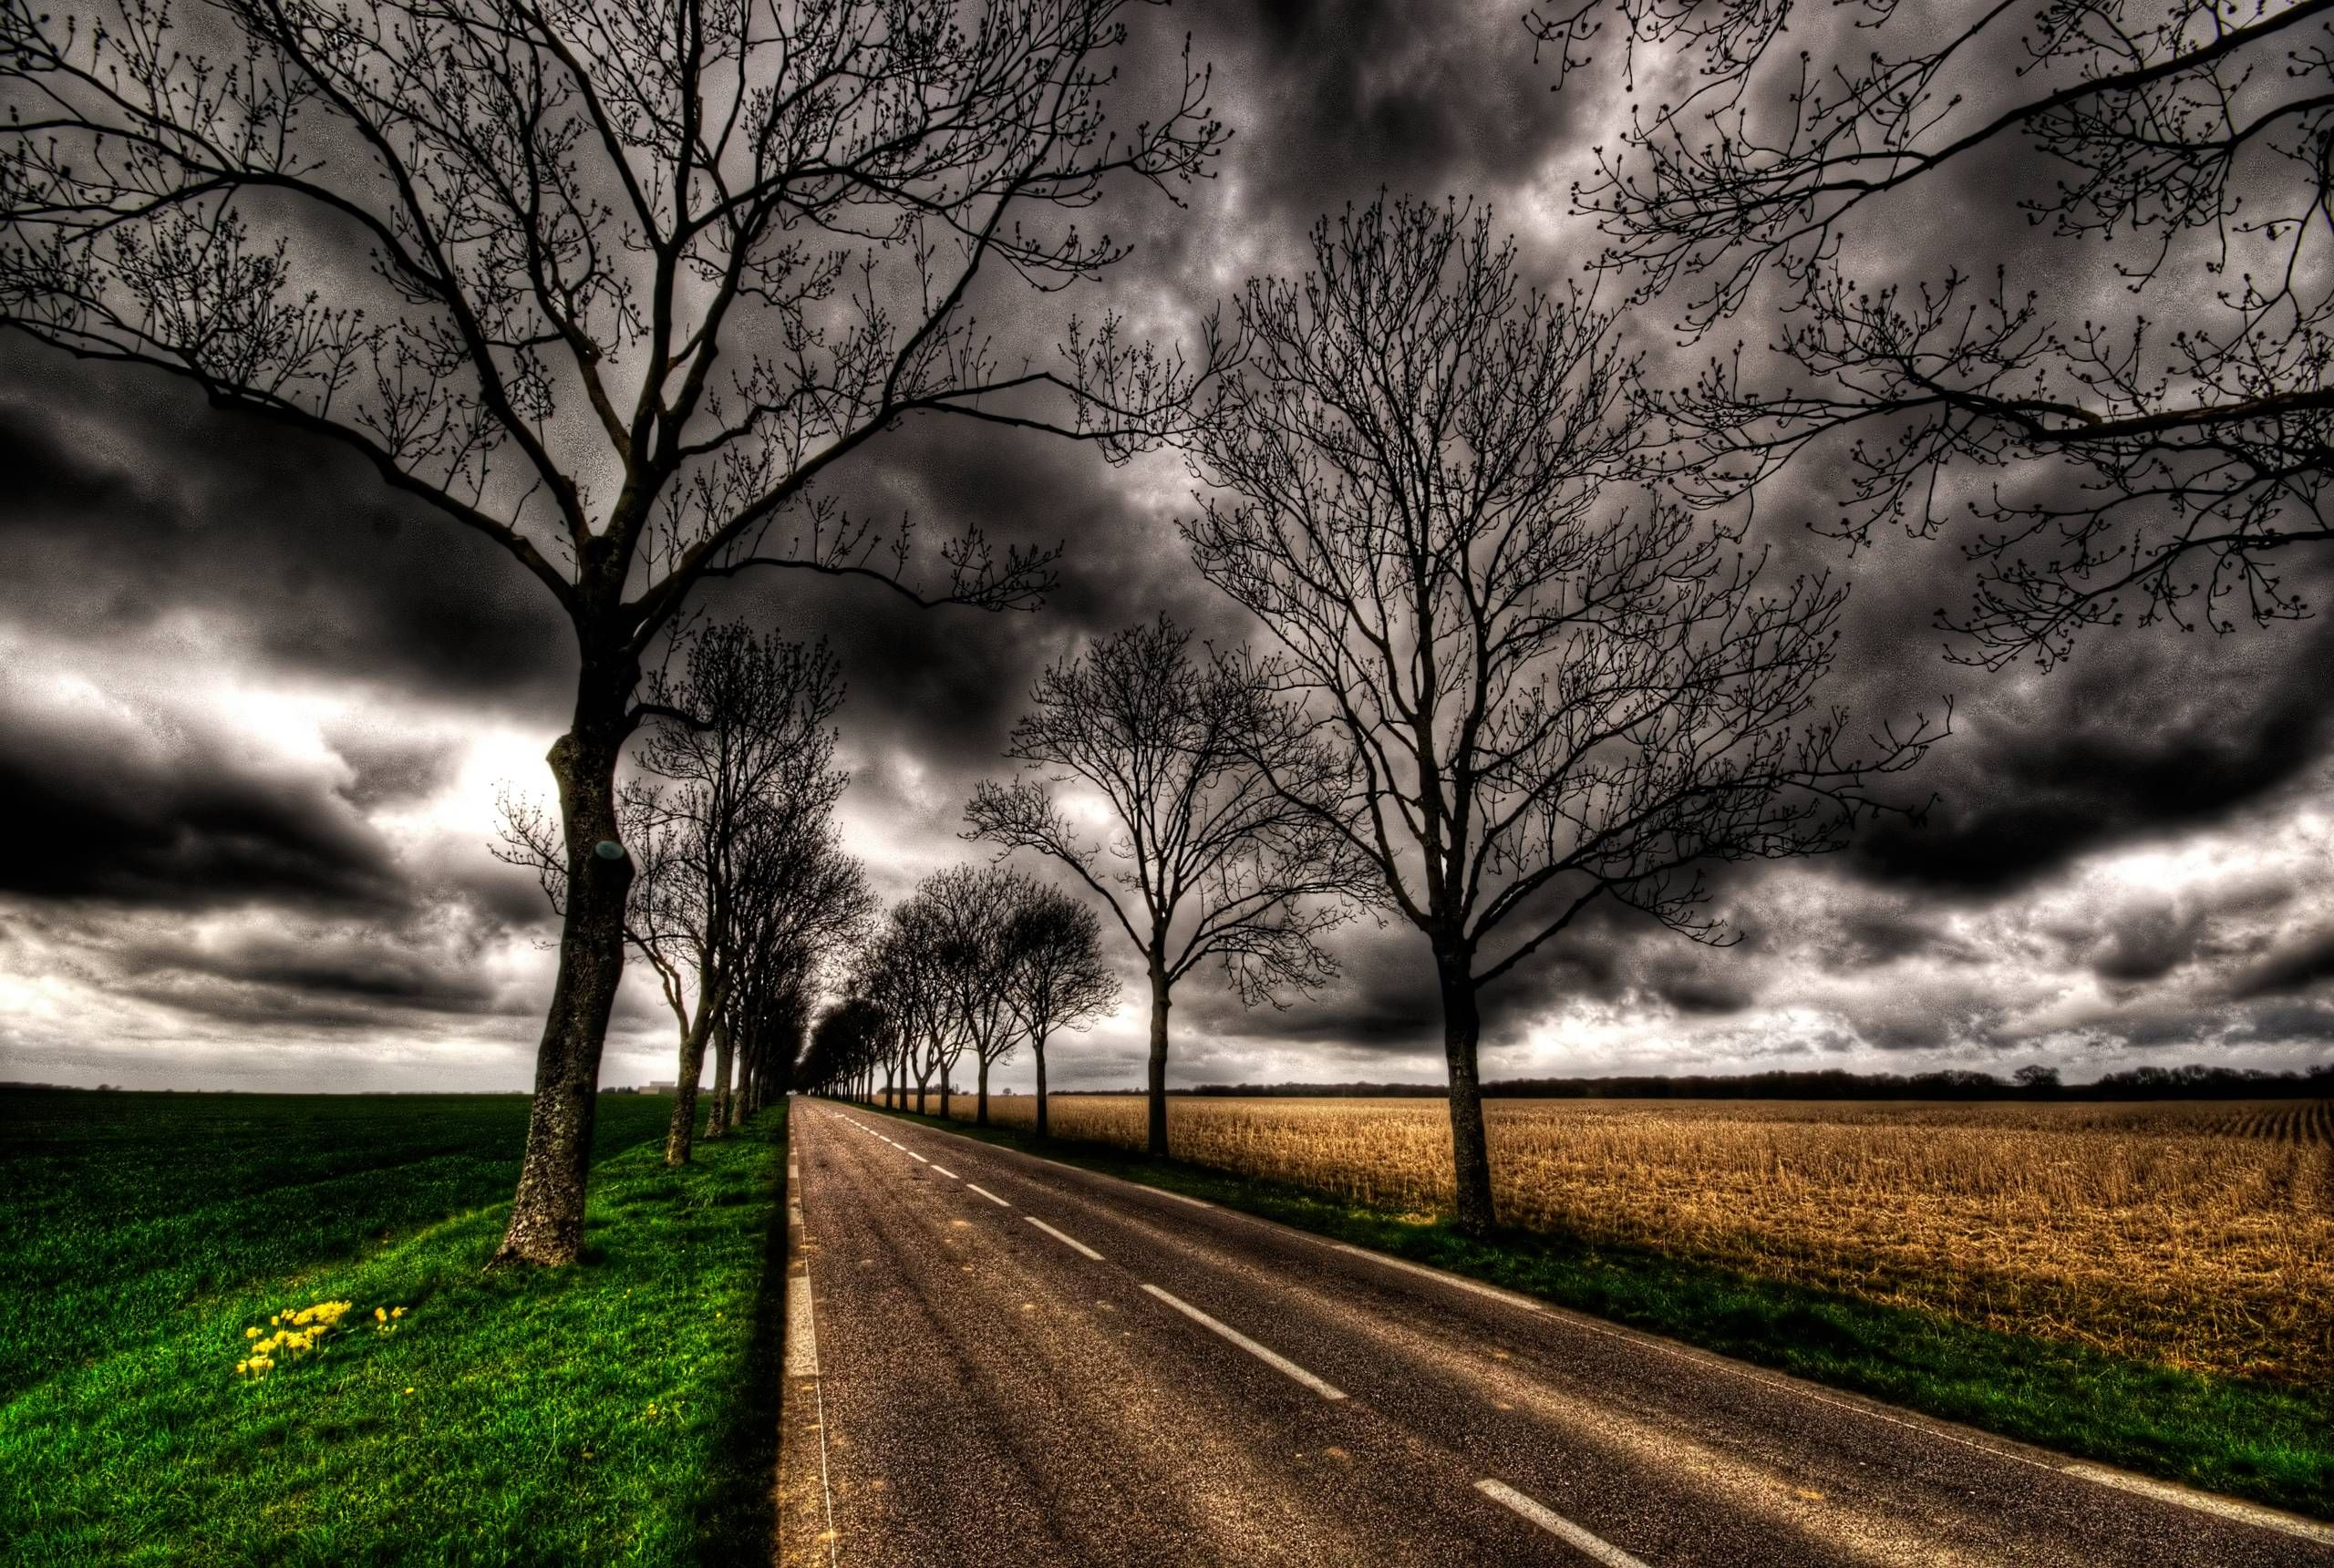 1141 Hdr Wallpapers Hdr Backgrounds Page 36 Amazing Nature Photos Nature Photography Hdr Photography